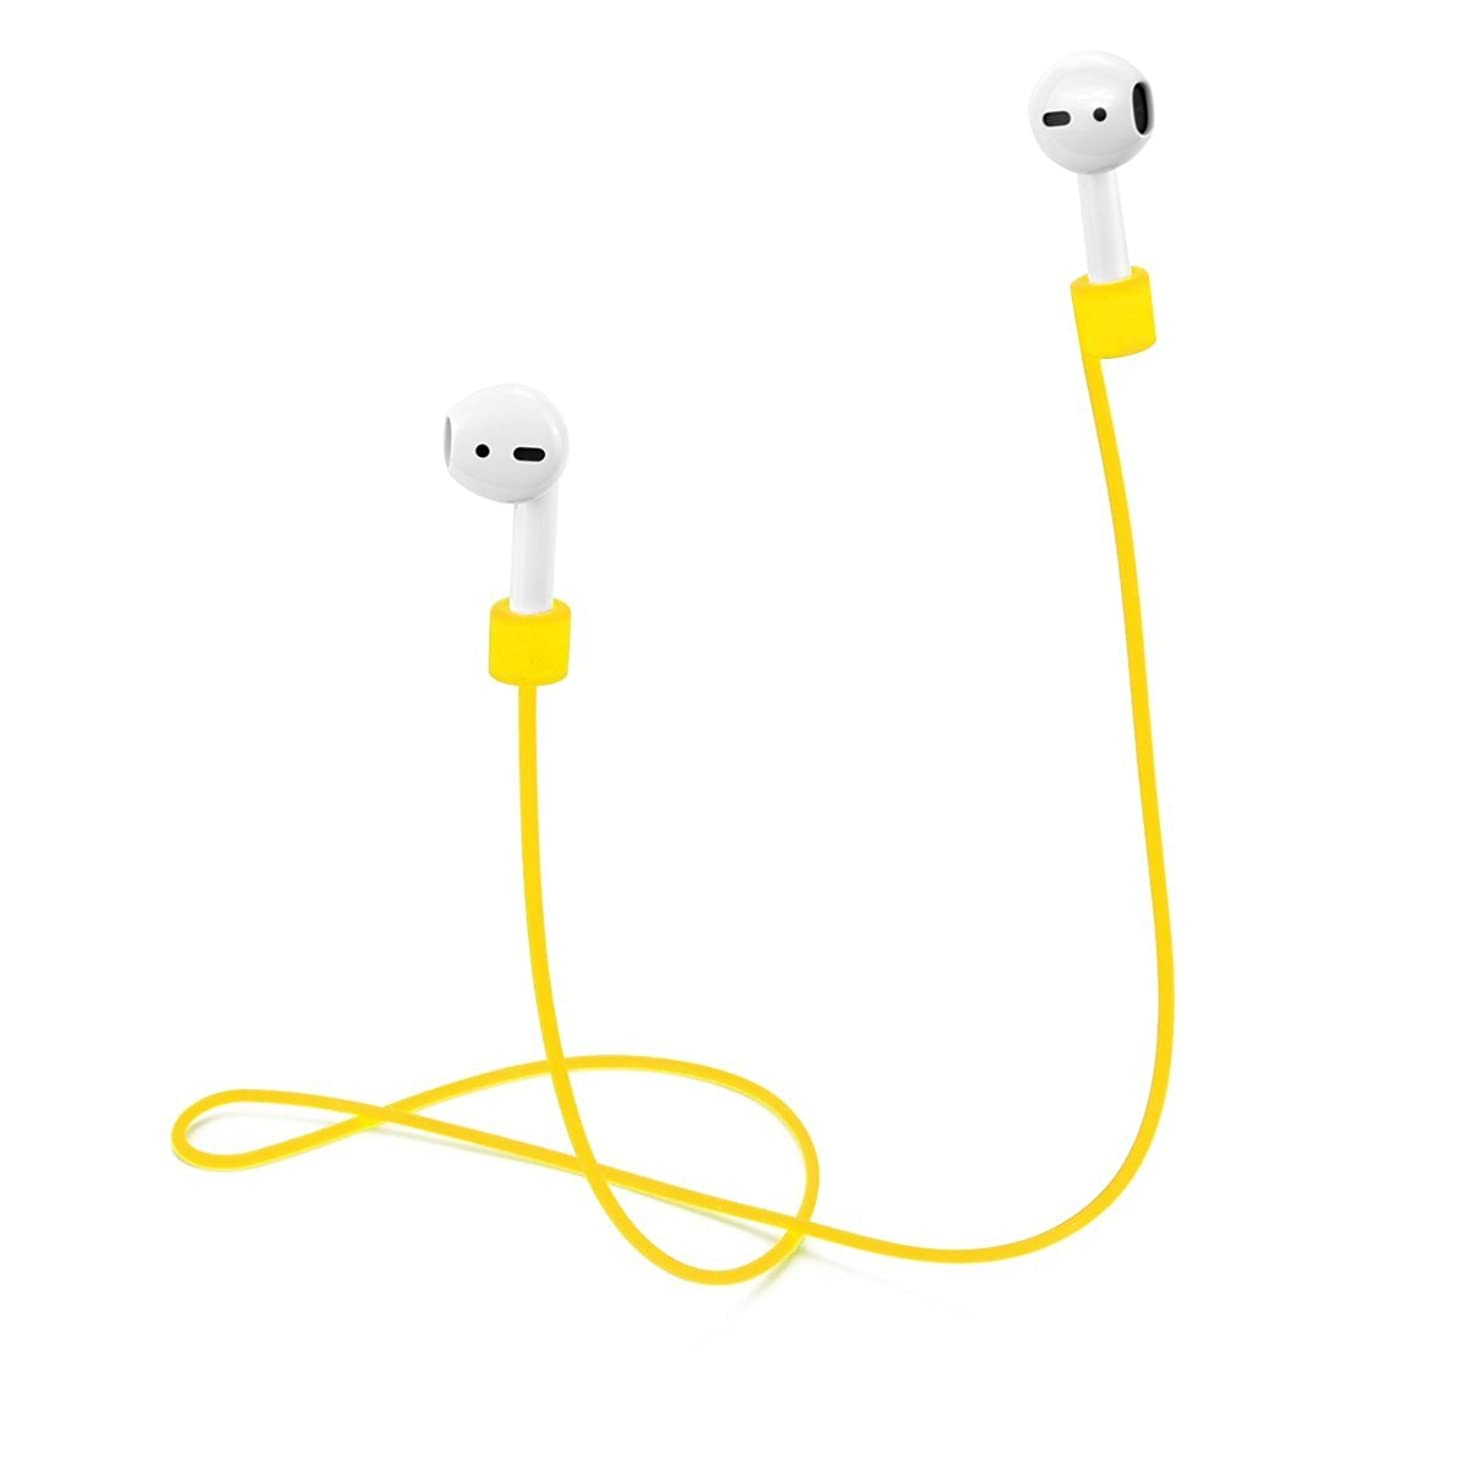 TOP CASE - AirPods Strap, Soft Silicone Sport Earphones Anti-Lost Strap, Wire Cable Connector for Apple AirPods Wireless Headphones - Yellow